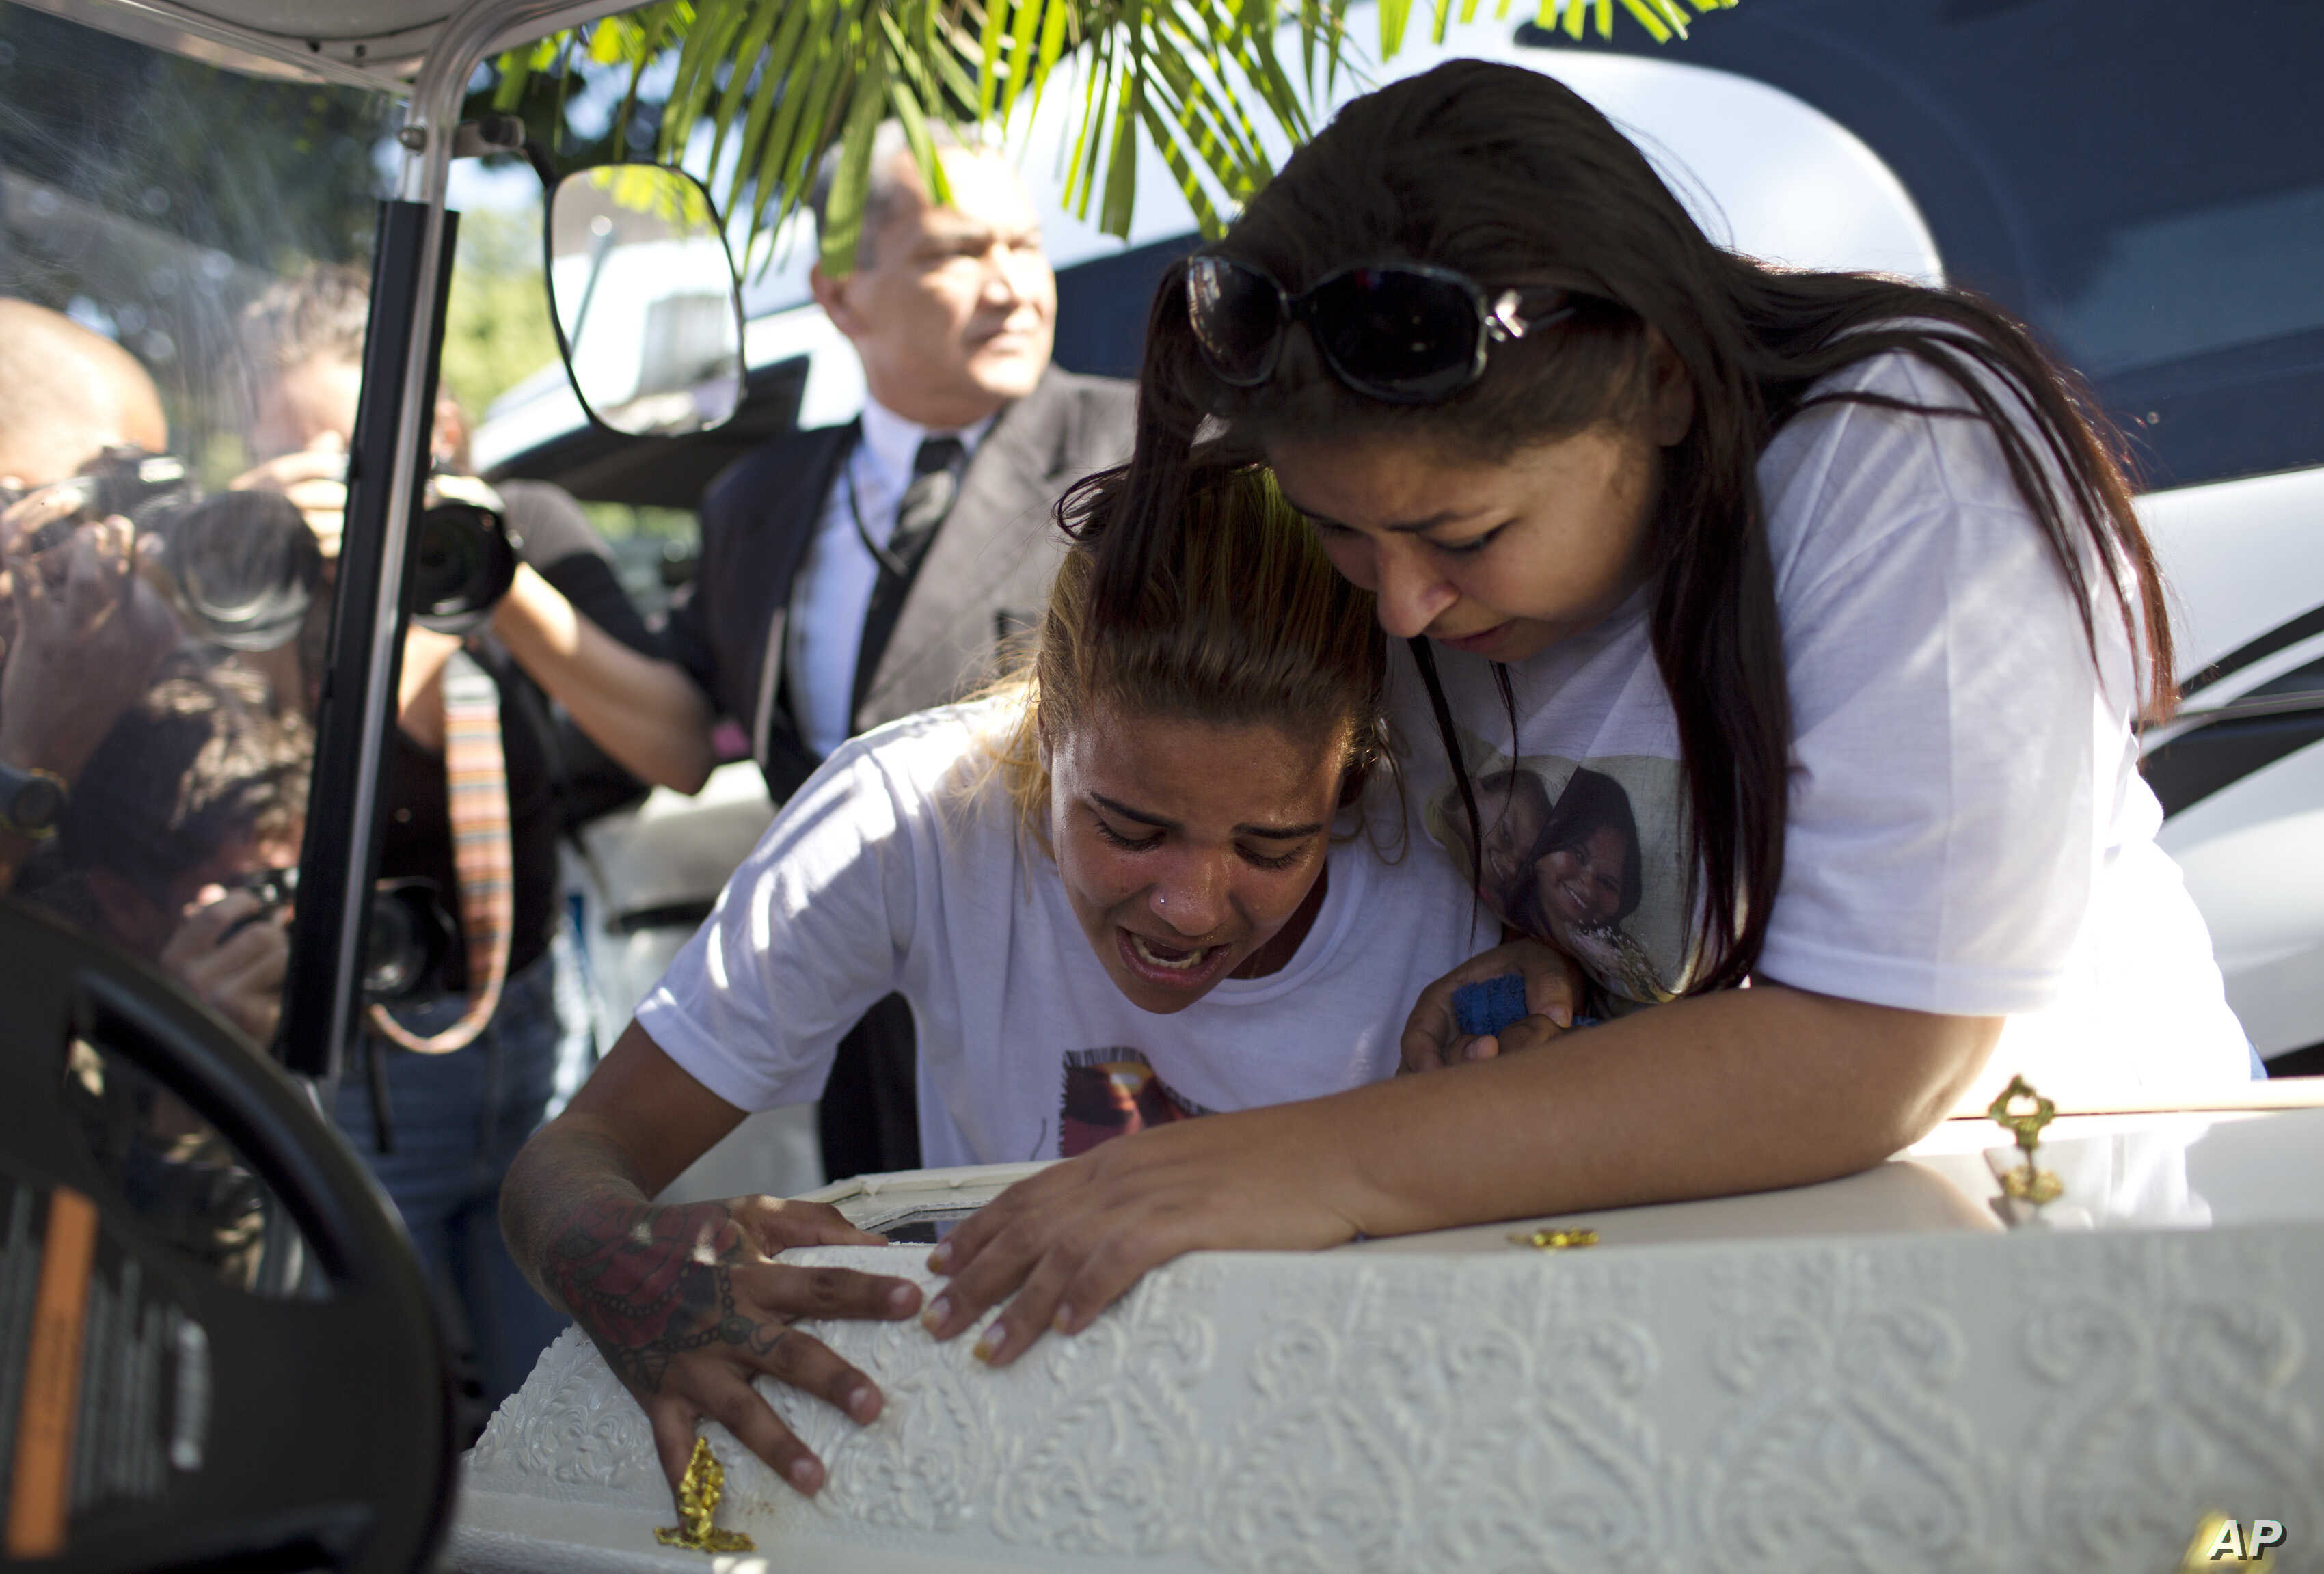 FILE - Adriana Maria dos Santos, mother of the late Vanessa do Santos, and a friend, Laisa, cry over Vanessa's casket during her burial in Rio de Janeiro, Brazil, July 6, 2017. The 10-year-old child was killed two days earlier after being hit in the ...